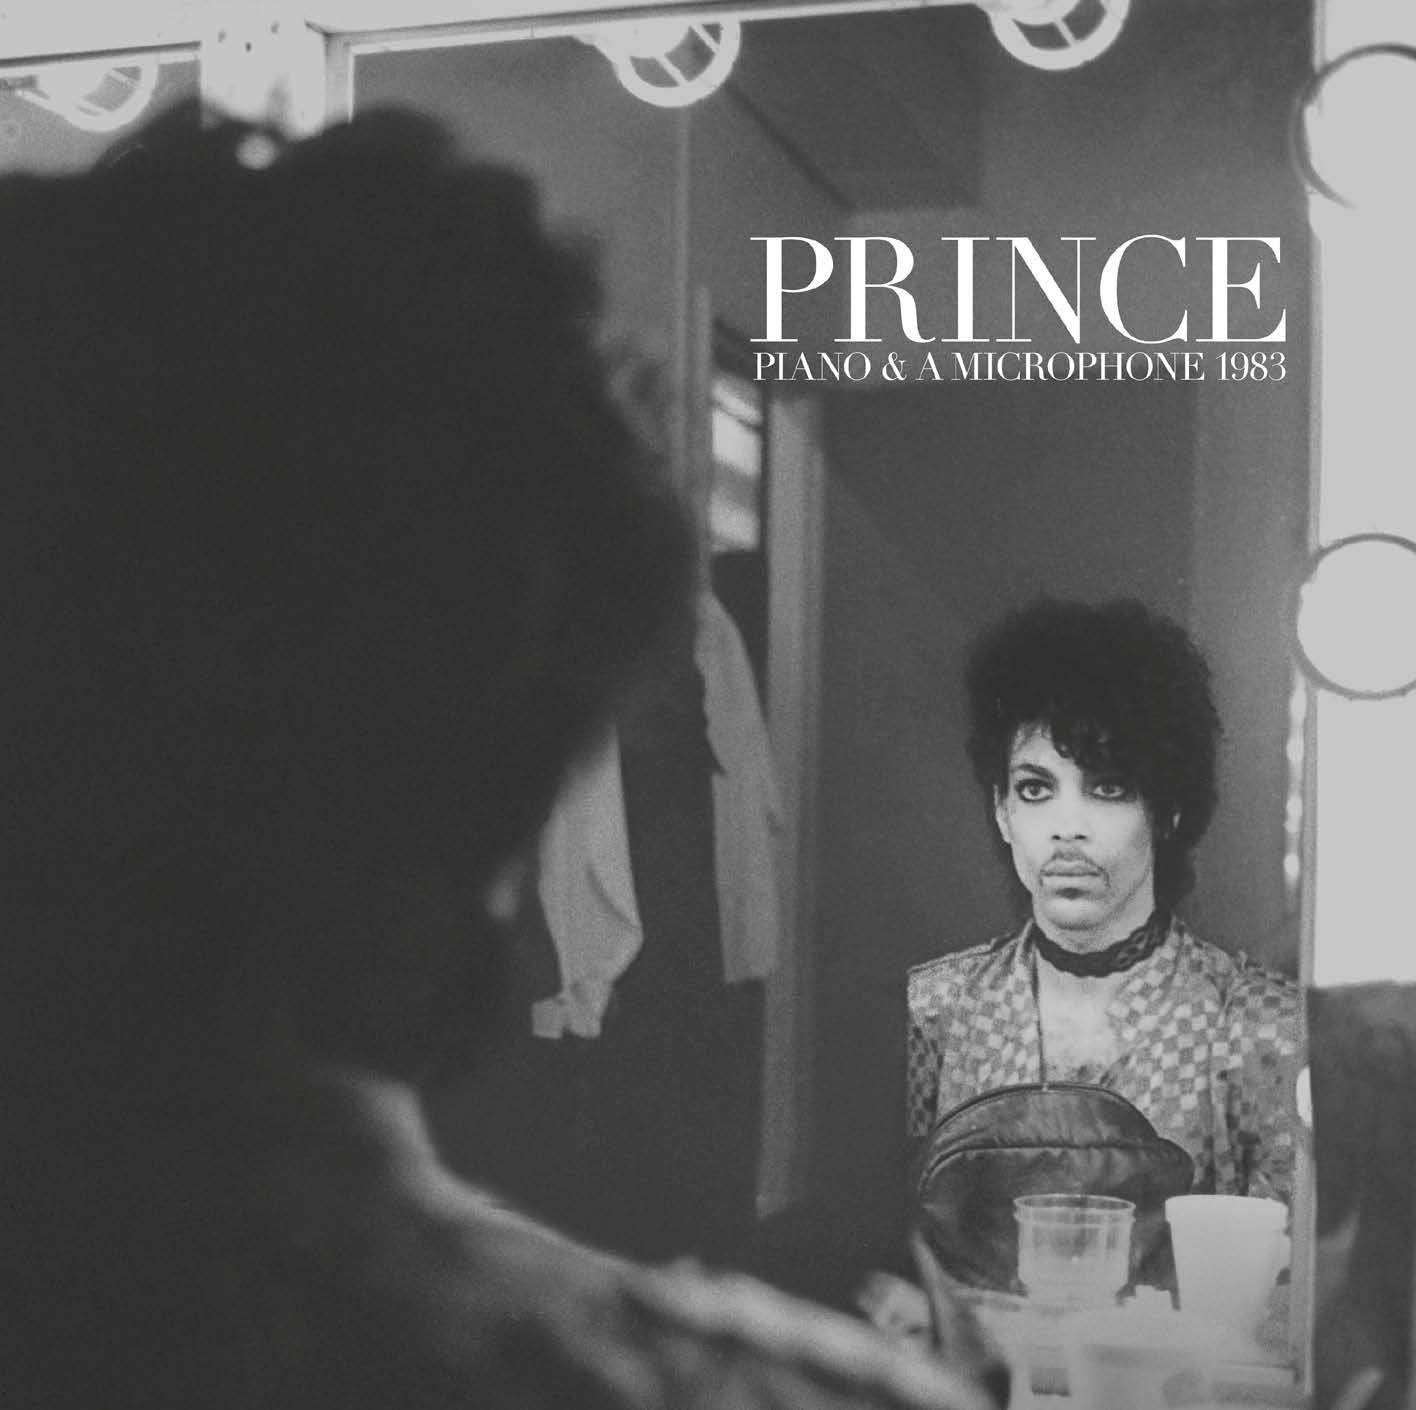 PRINCE PIANO & MICROPHONE 1983 1 CD Album Digi Sleeve Brand New Sealed